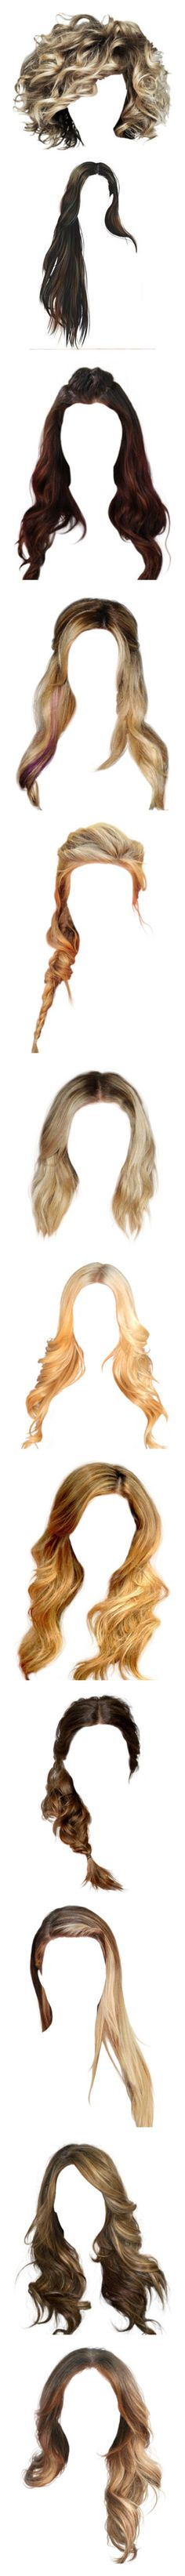 """""""Hair 6"""" by casey-avery ❤ liked on Polyvore featuring hair, wigs, doll hair, hairstyles, doll parts, filler, beauty products, haircare, hair styling tools and dolls"""